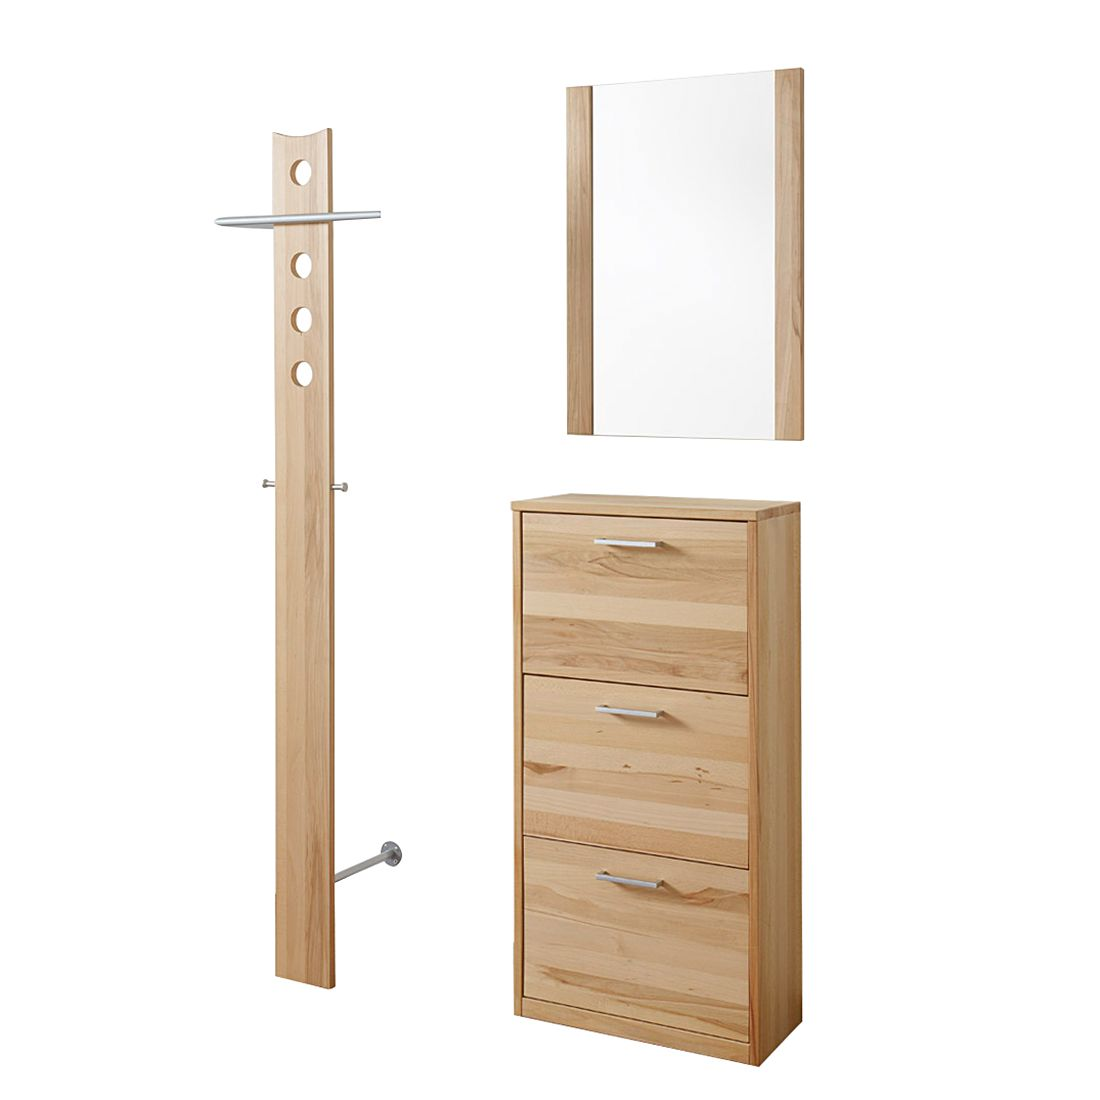 garderobenset woodfull iv 3 teilig kernbuche massiv ge lt. Black Bedroom Furniture Sets. Home Design Ideas